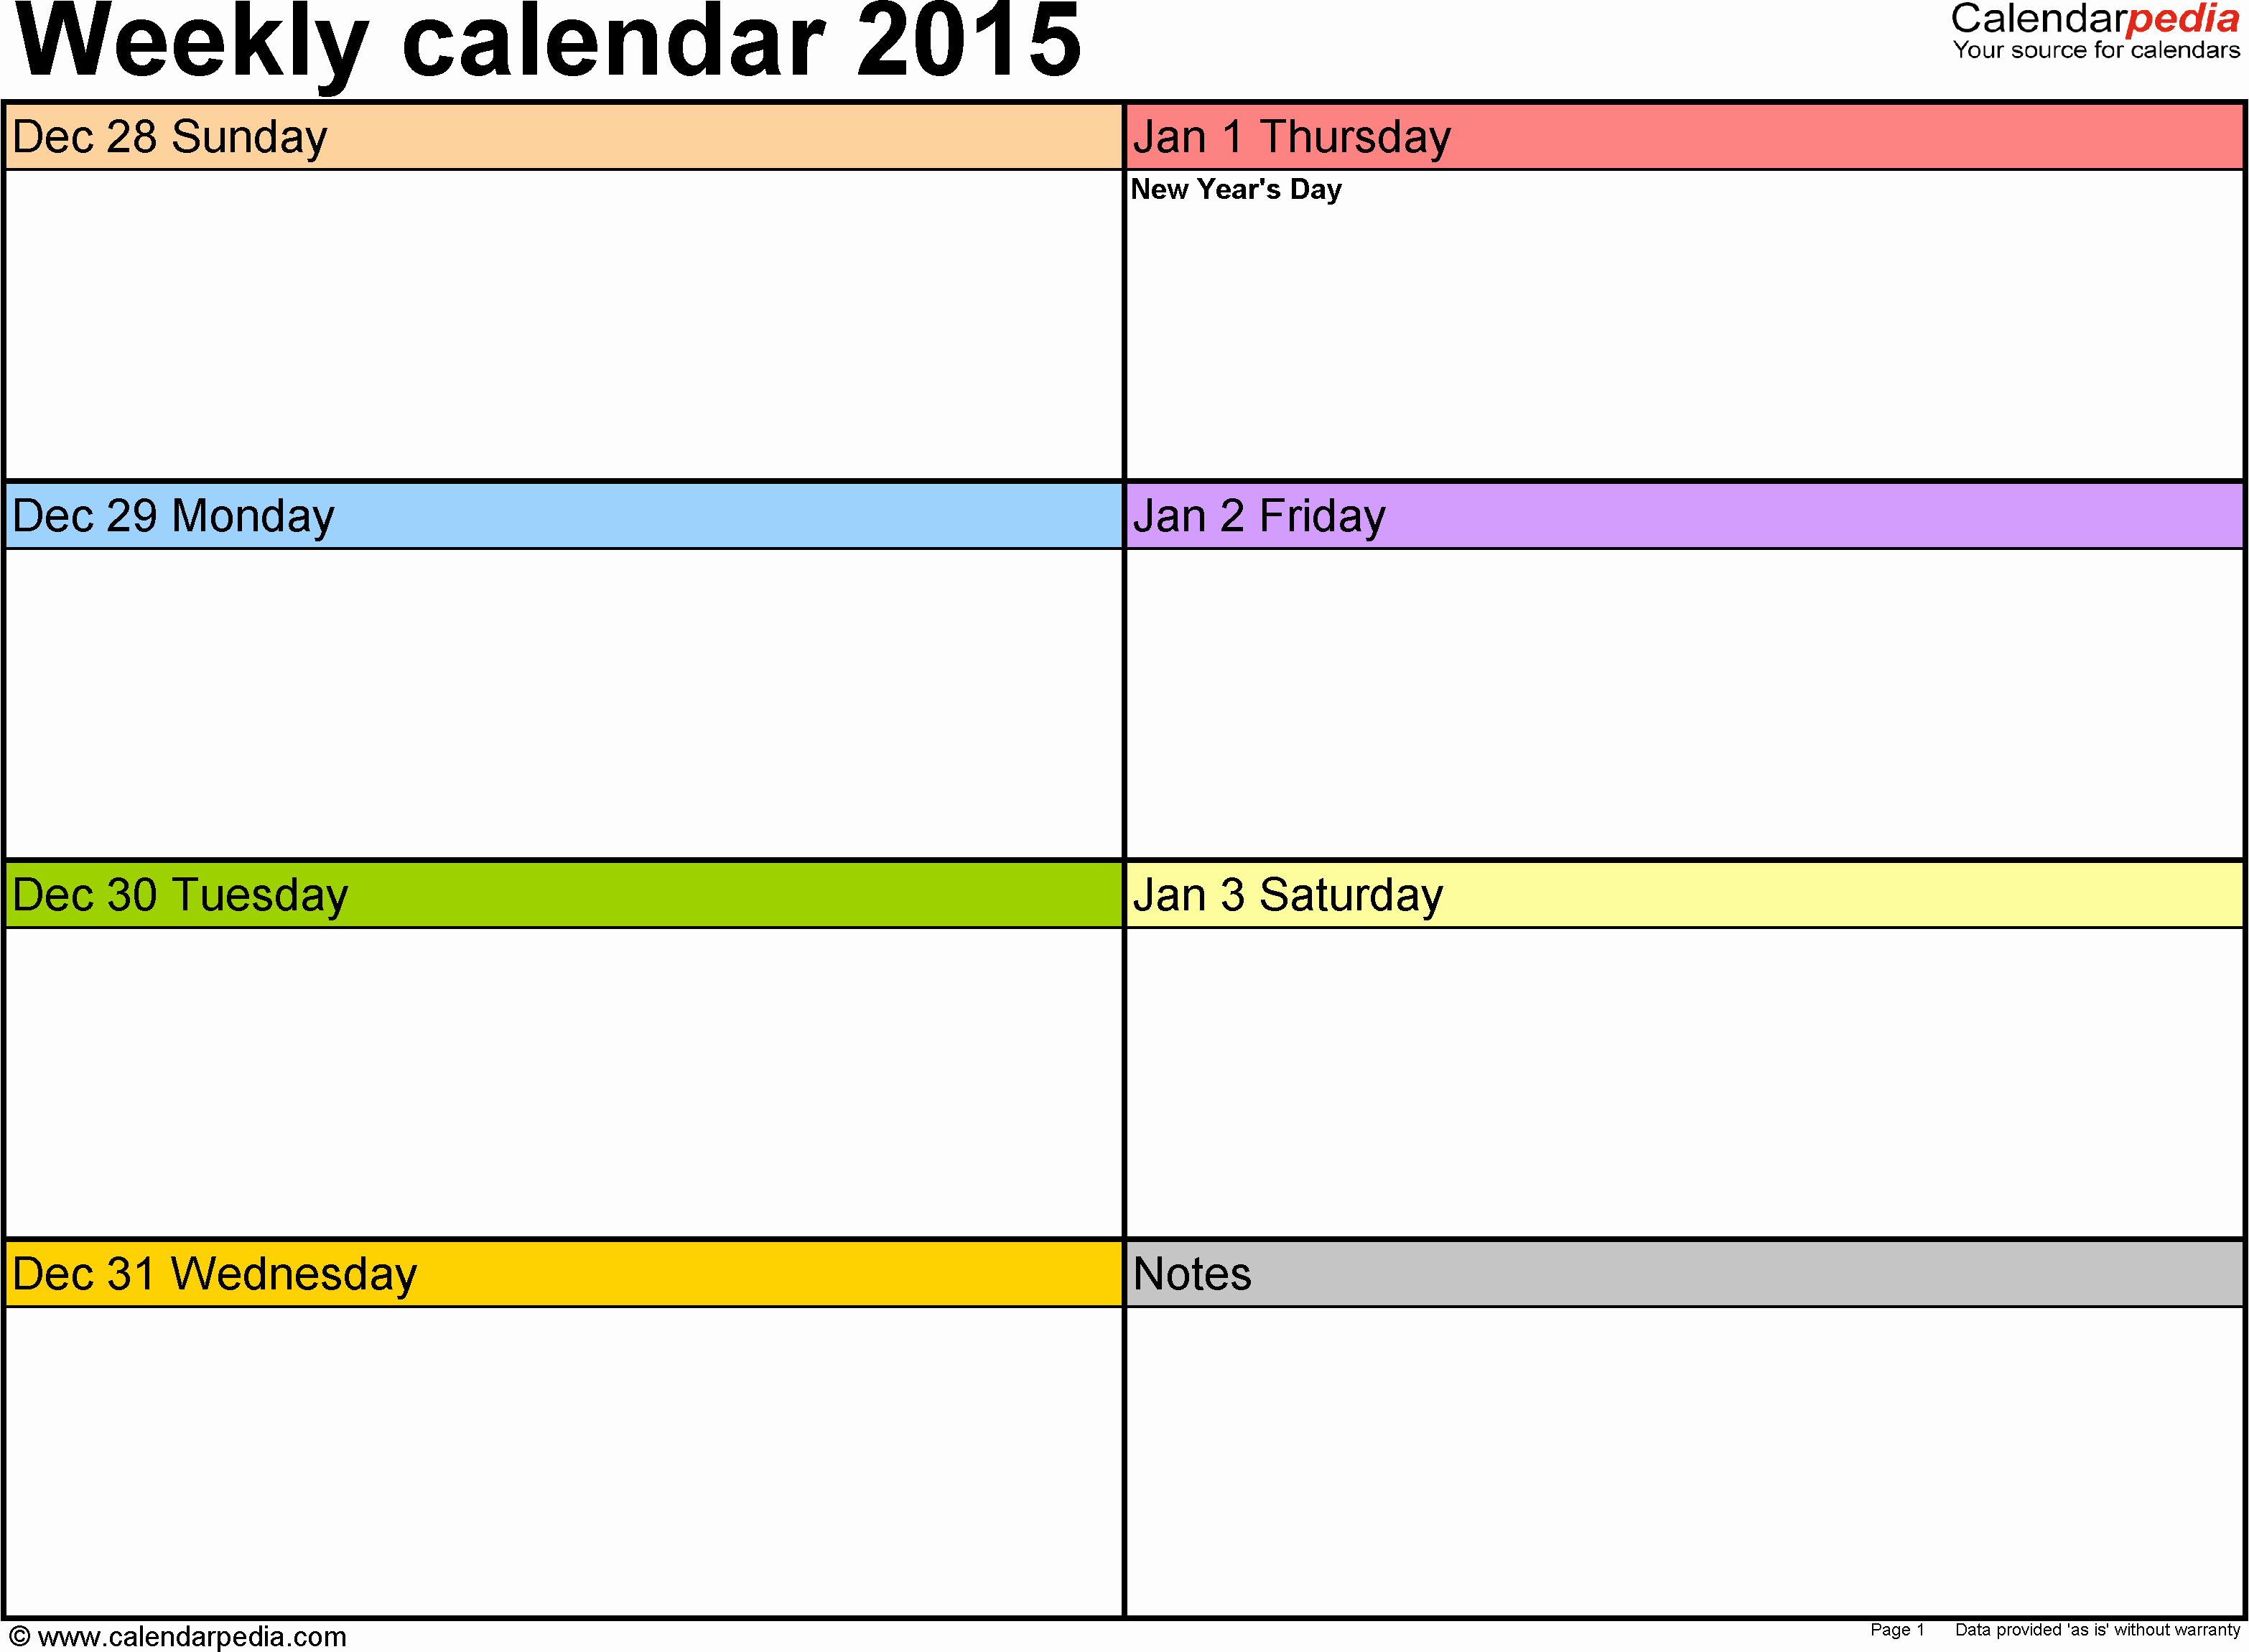 7 Day Week Calendar Template Best Of Weekly Calendar 2015 for Pdf 12 Free Printable Templates